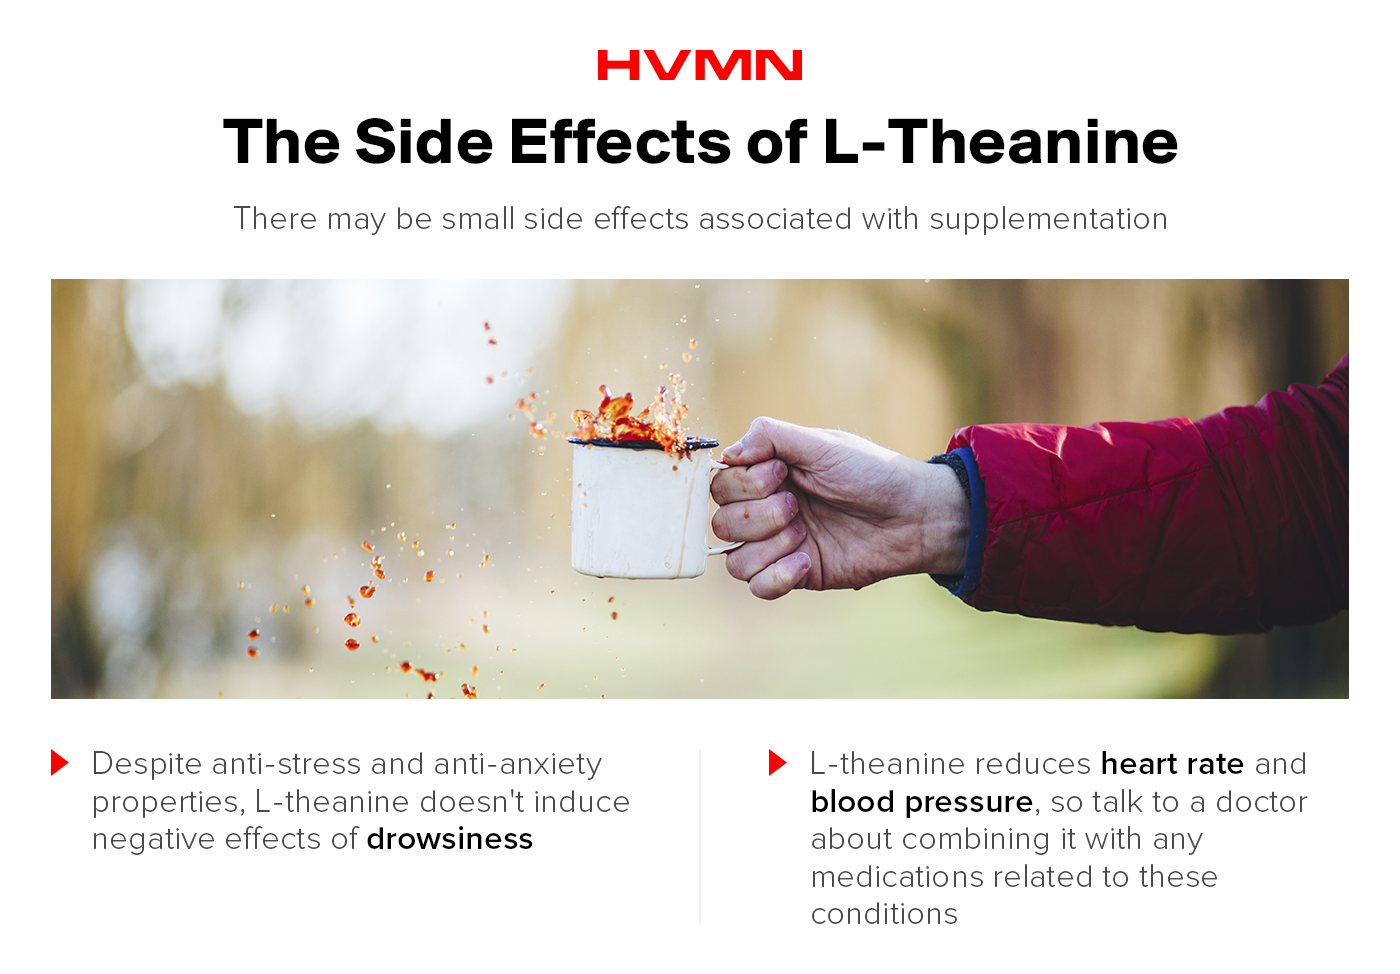 A cup of coffee being held by a hand with coffee splashing all over. This shows the side effects of l-theanine.